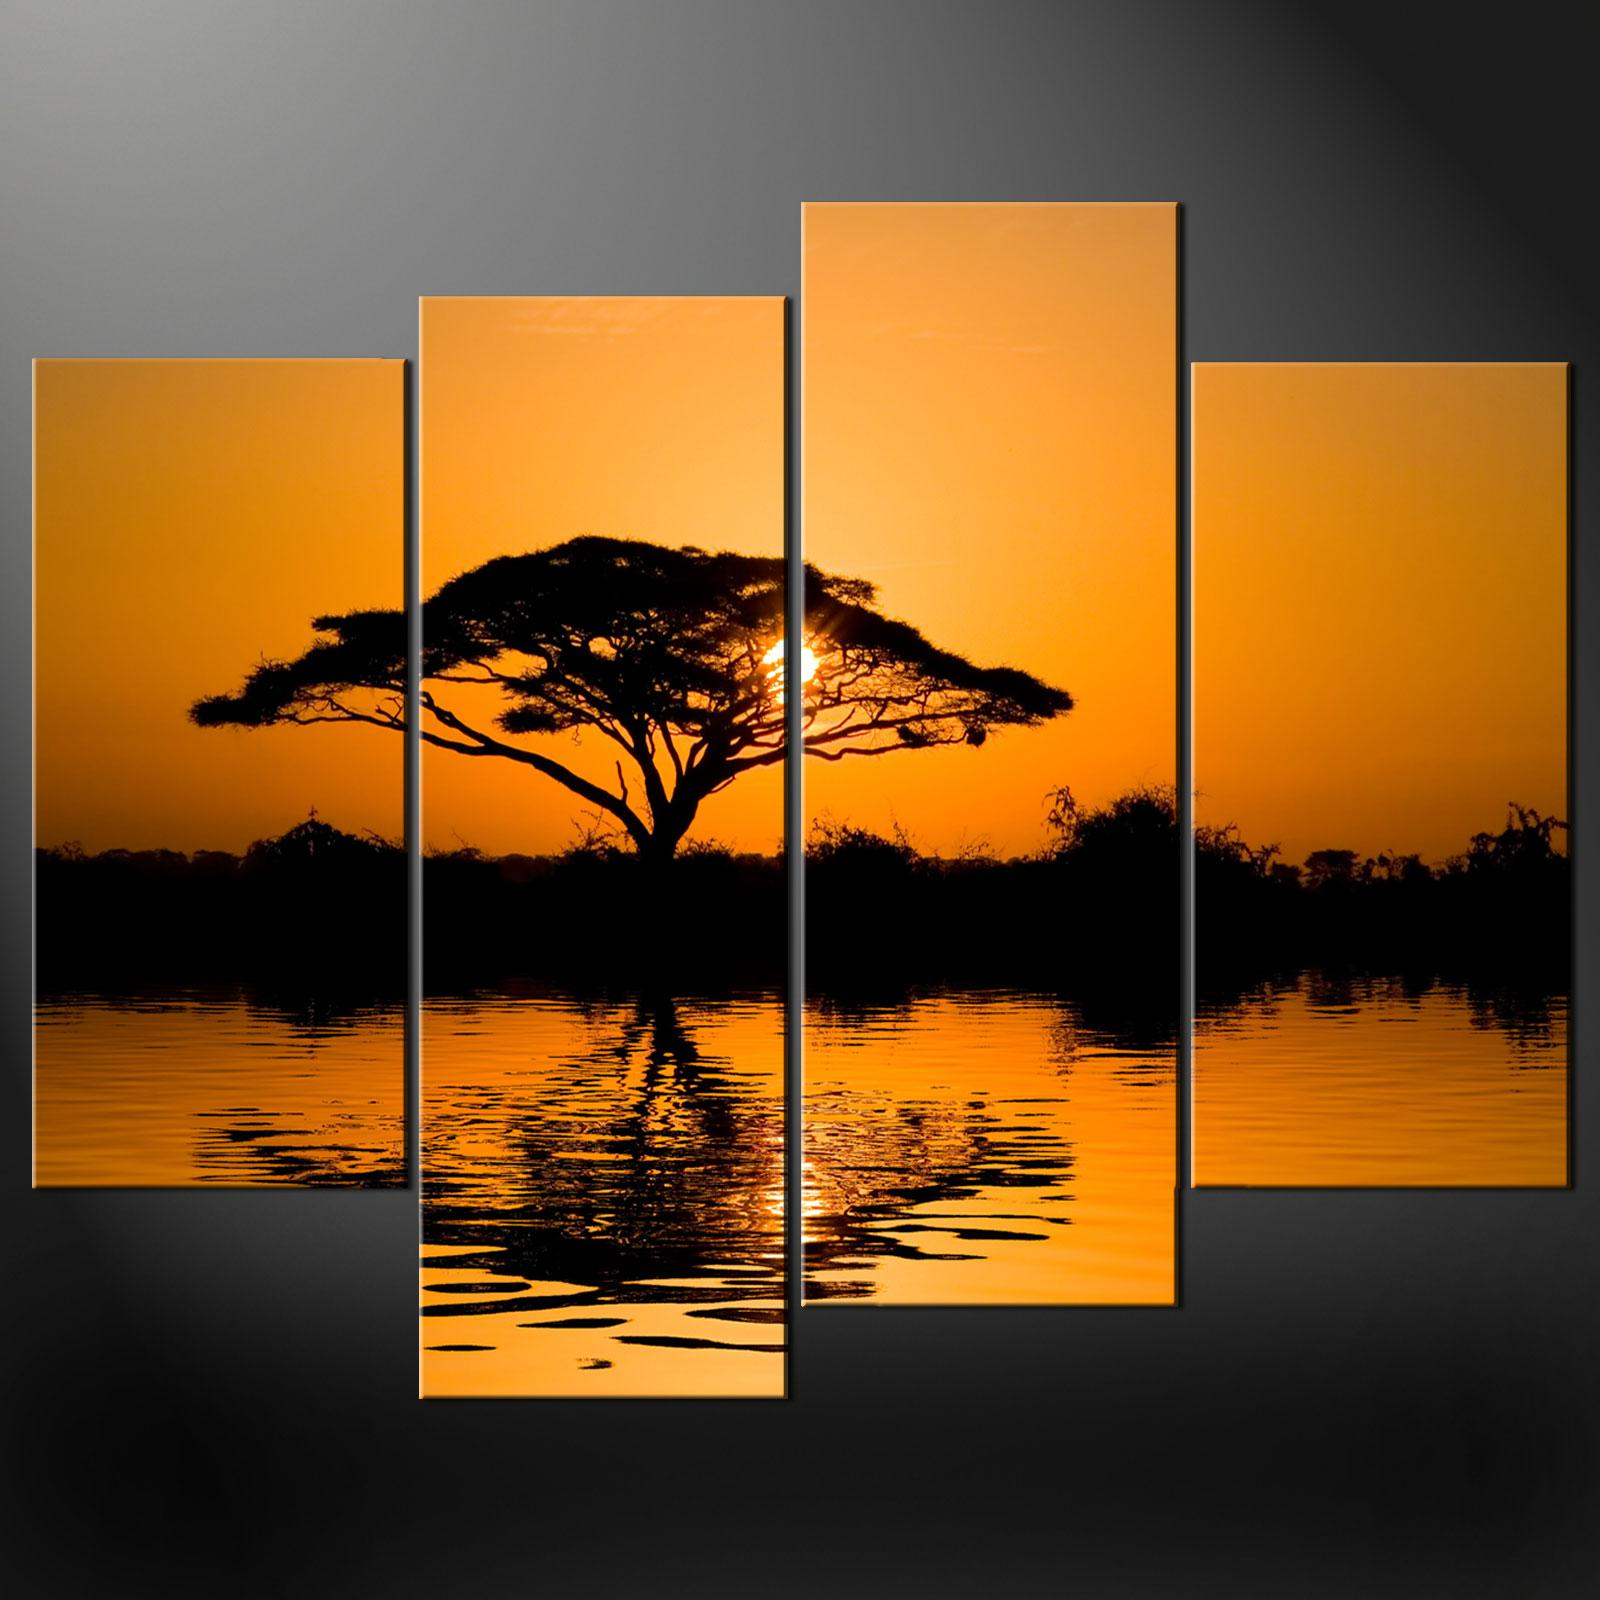 framed 4 panel large african wall art decor modern sunset oil